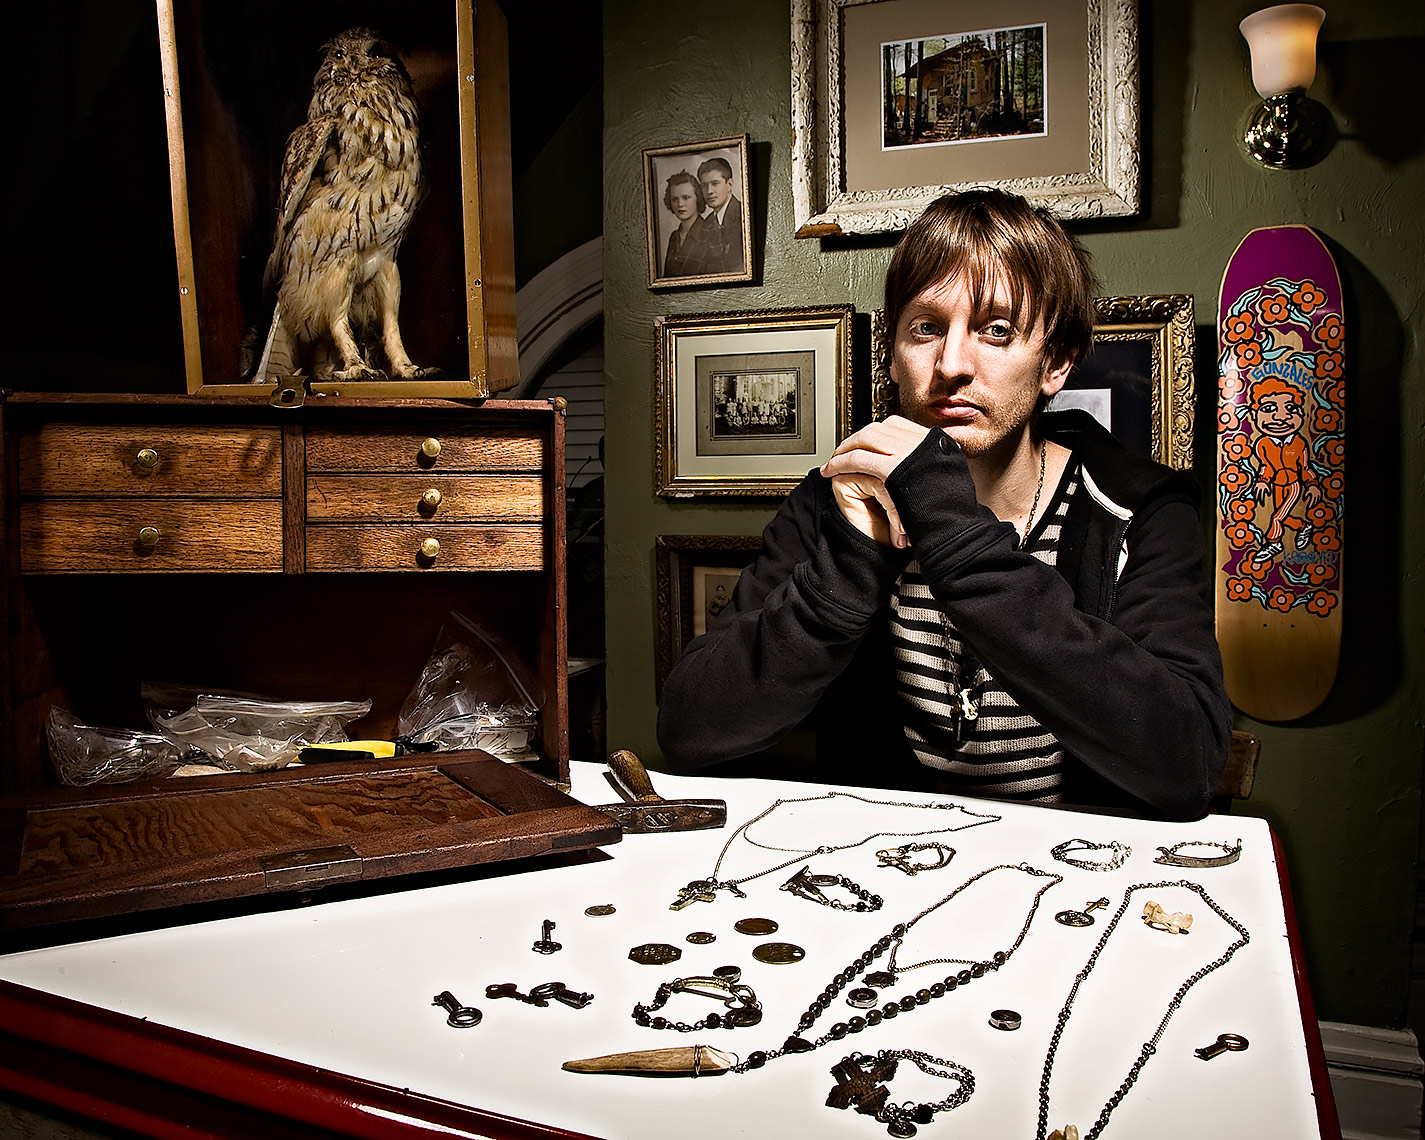 portrait of jewelry maker Michael Hickey for pittsburgh city paper by brian kaldorf